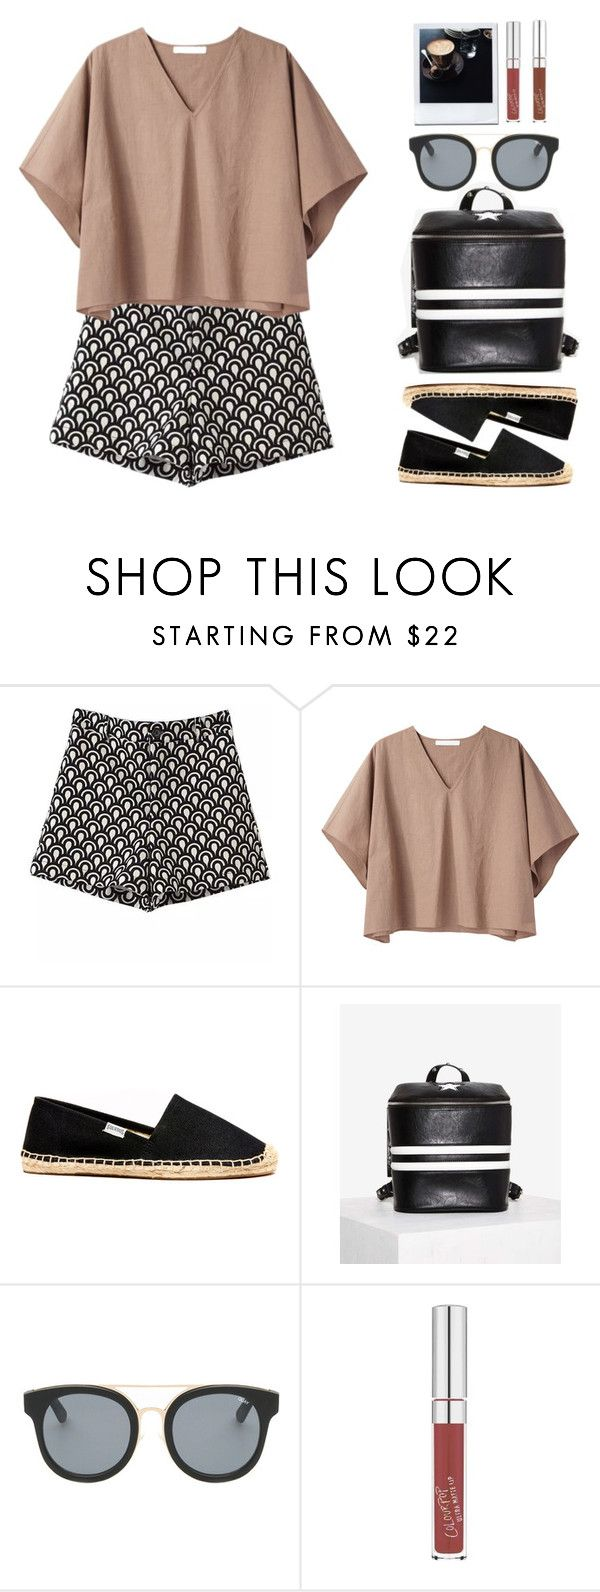 """N°169"" by yellowgrapes ❤ liked on Polyvore featuring Prada, Apiece Apart, Soludos and Quay"